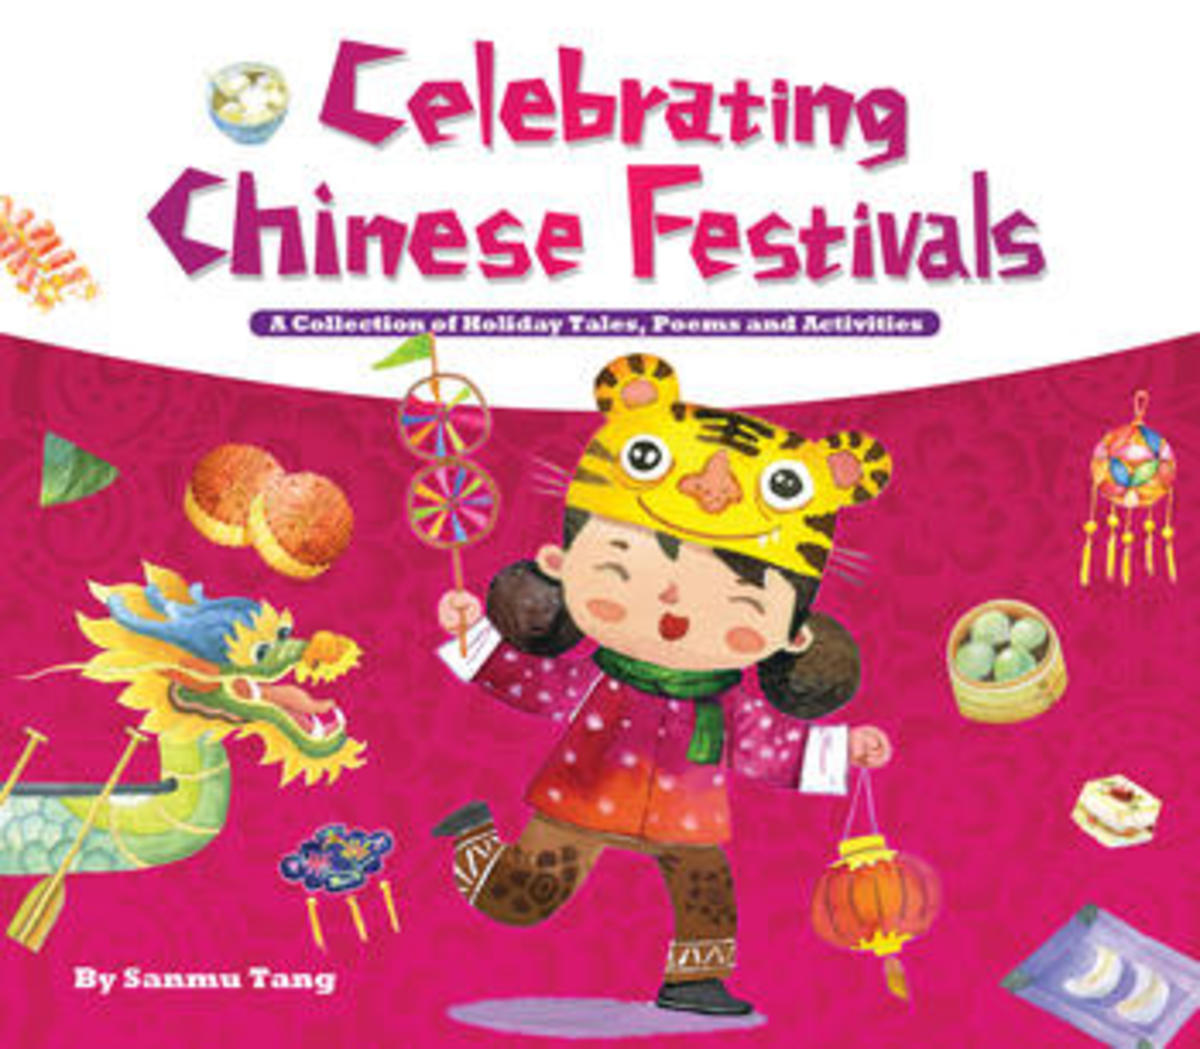 Celebrating Chinese Festivals